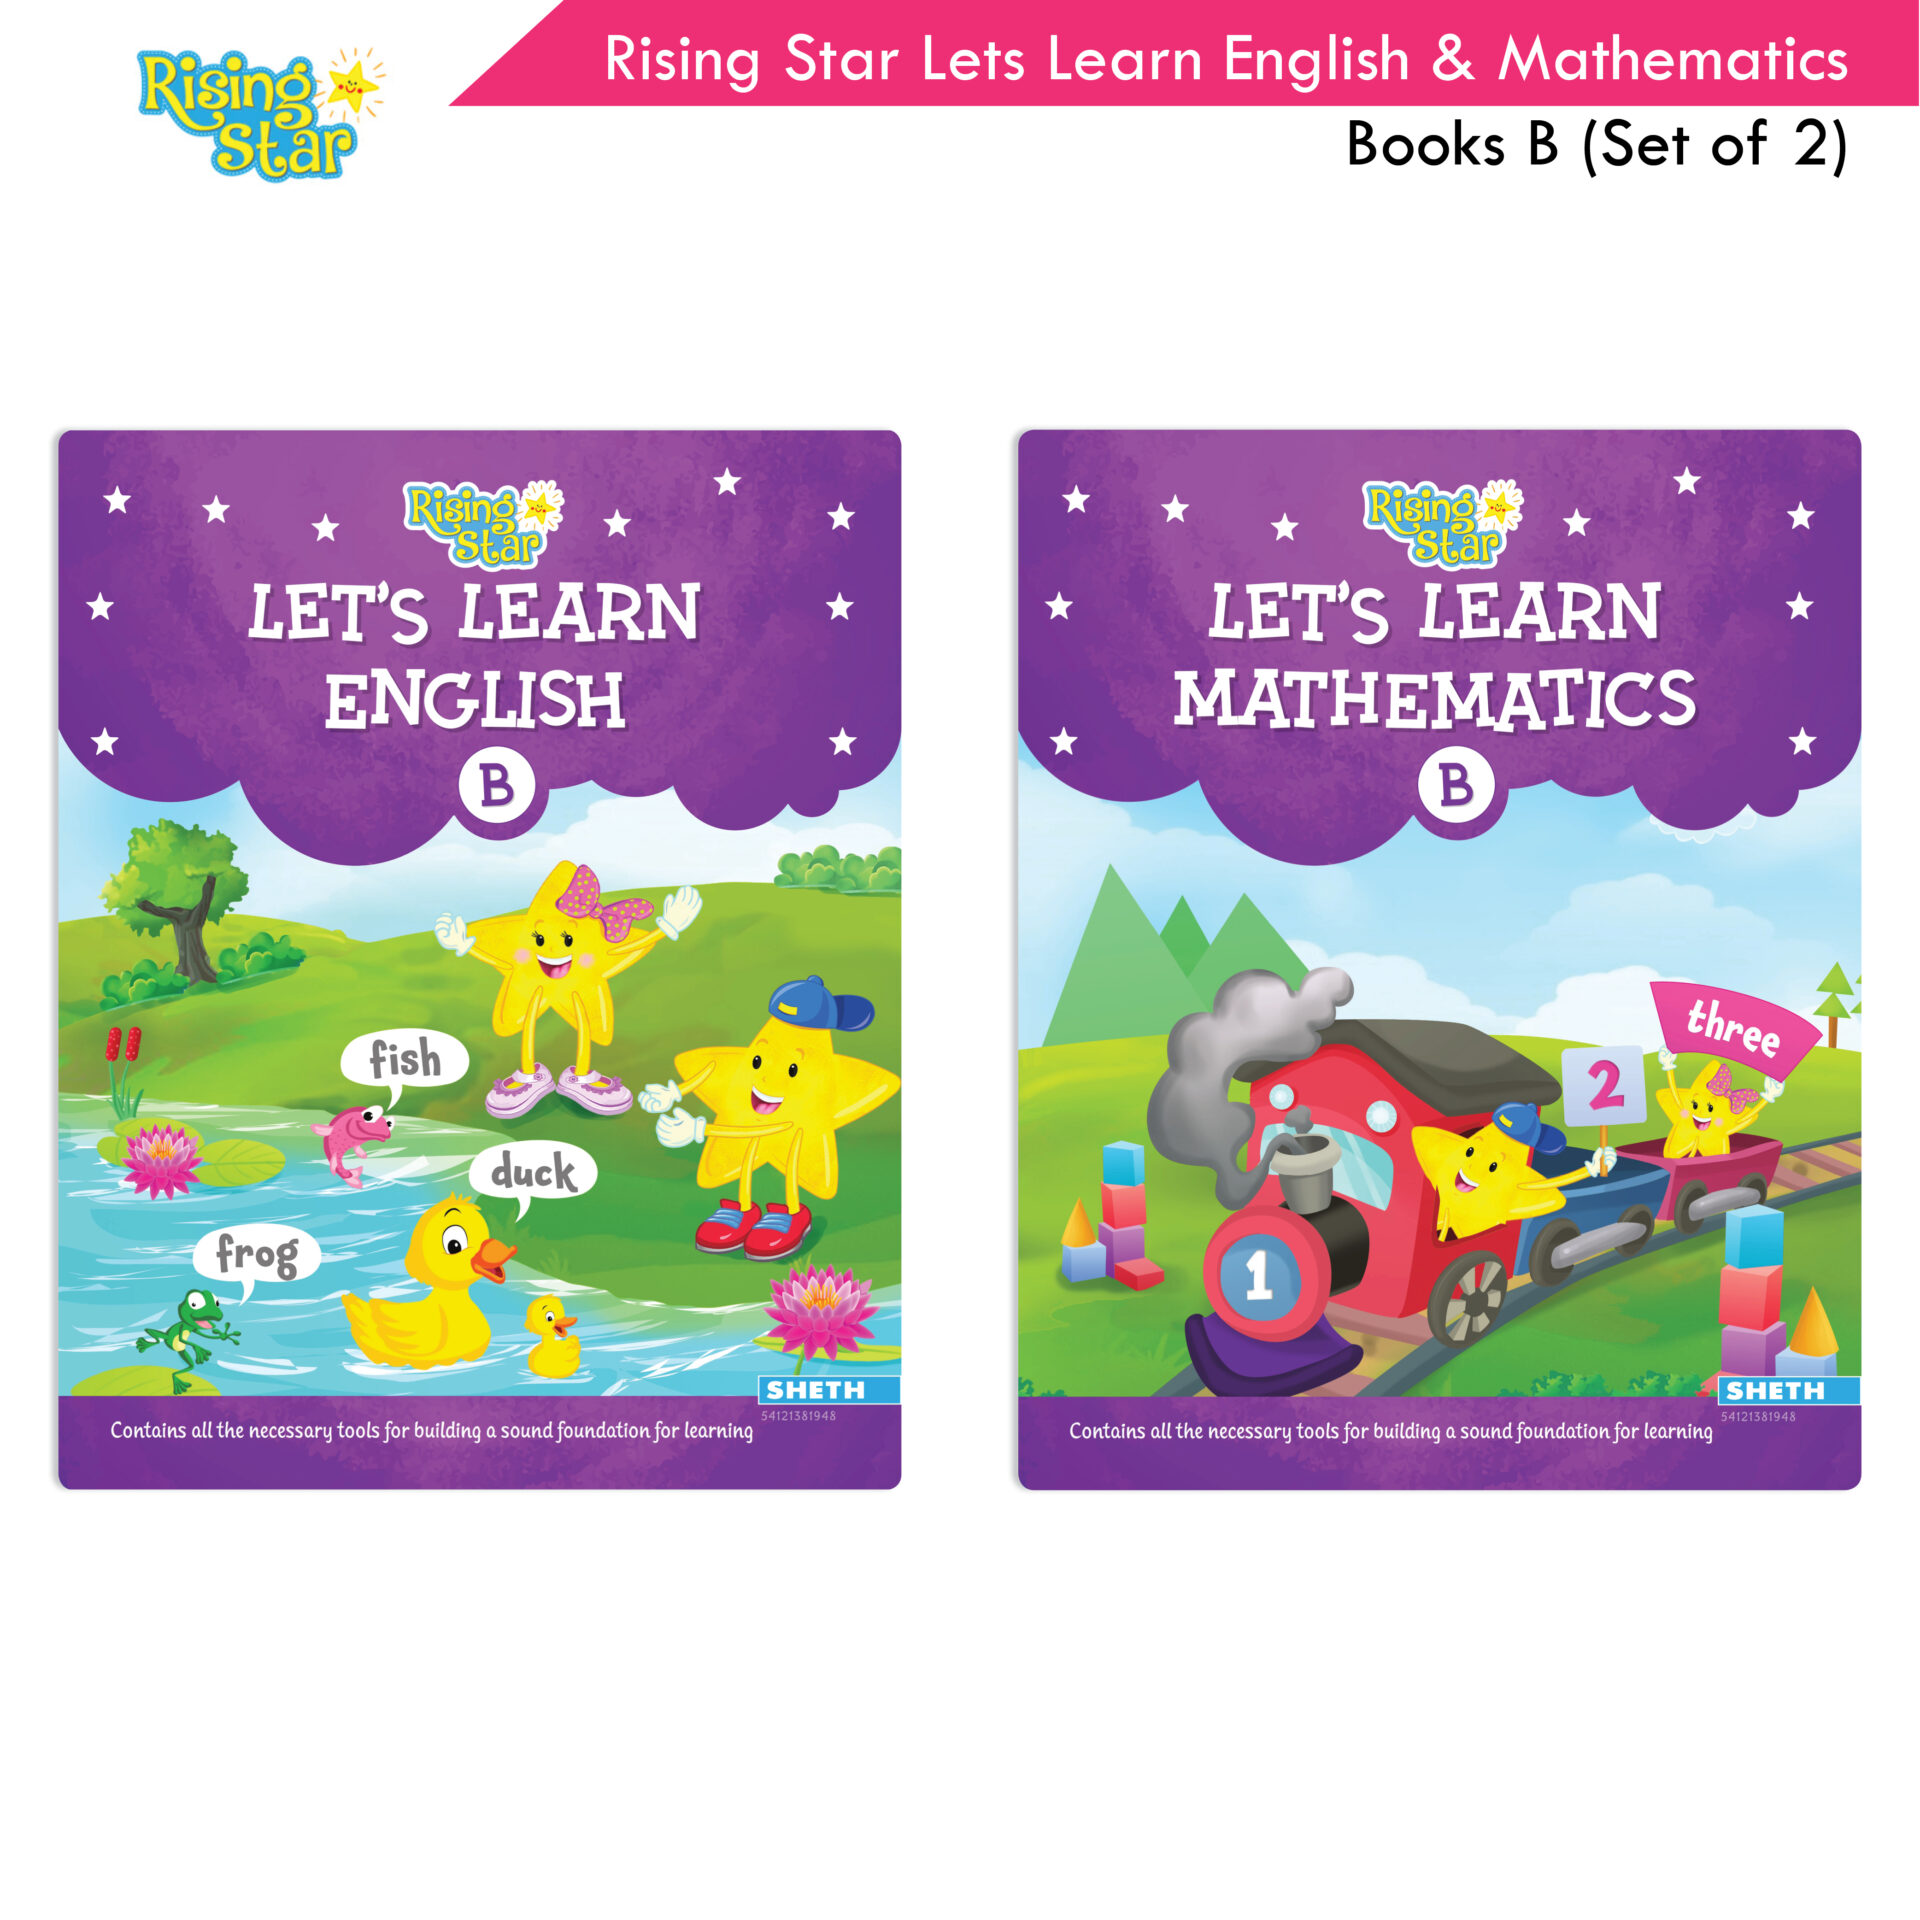 Rising Star Lets Learn English and Mathematics Books B Set of 2 1